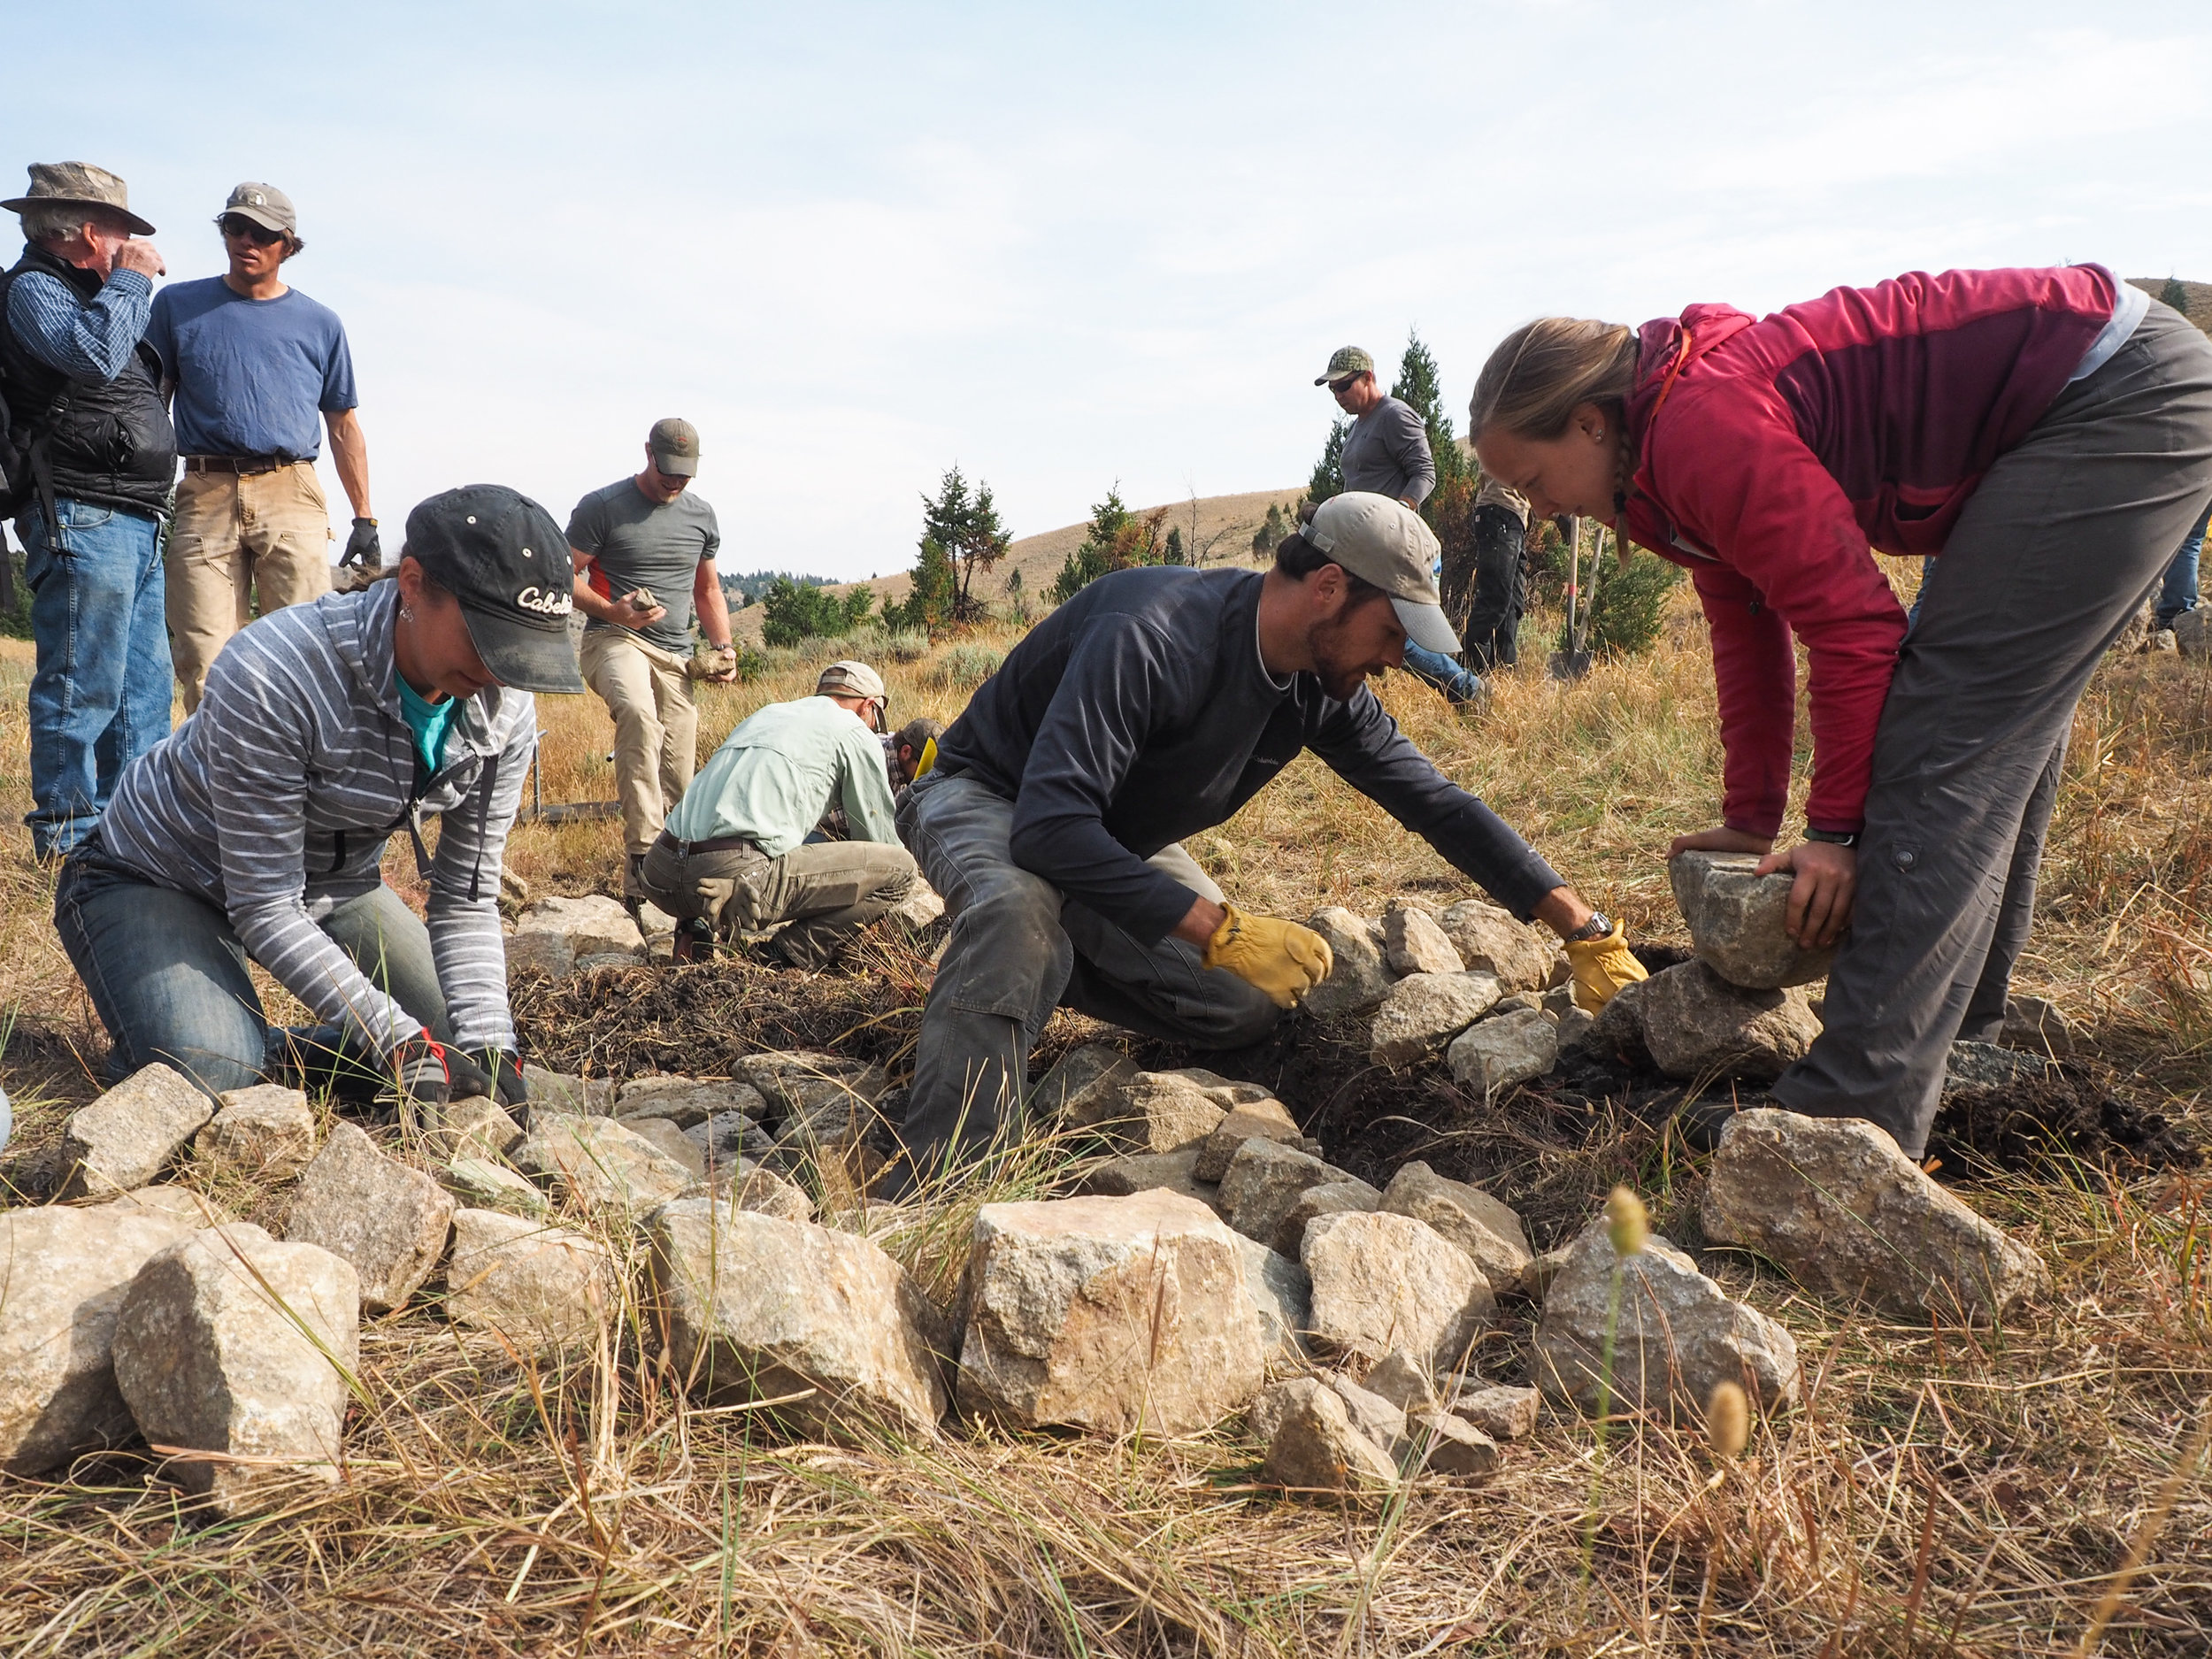 Low-tech restoration efforts, like using Zeedyk structures or  beaver dam analogs , are some of the key conservation actions the  Sage Grouse Initiative  suggests ranchers can take to benefit both working lands and wildlife. The Initiative is working with partners to host trainings that help spread the word.